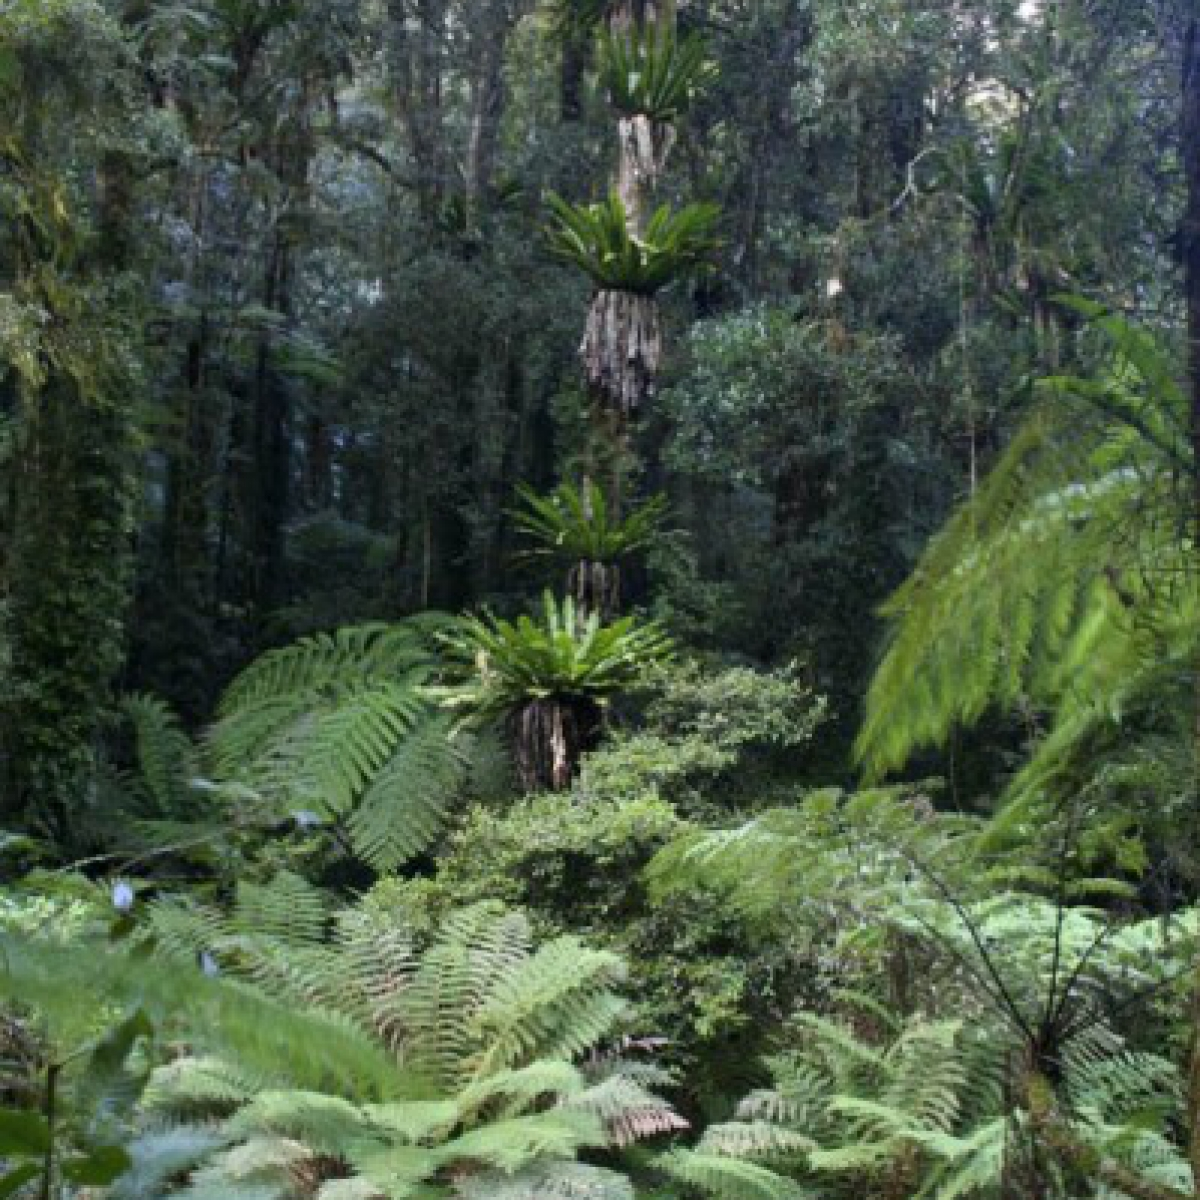 Forest-scape, Lamington National Park, Queensland